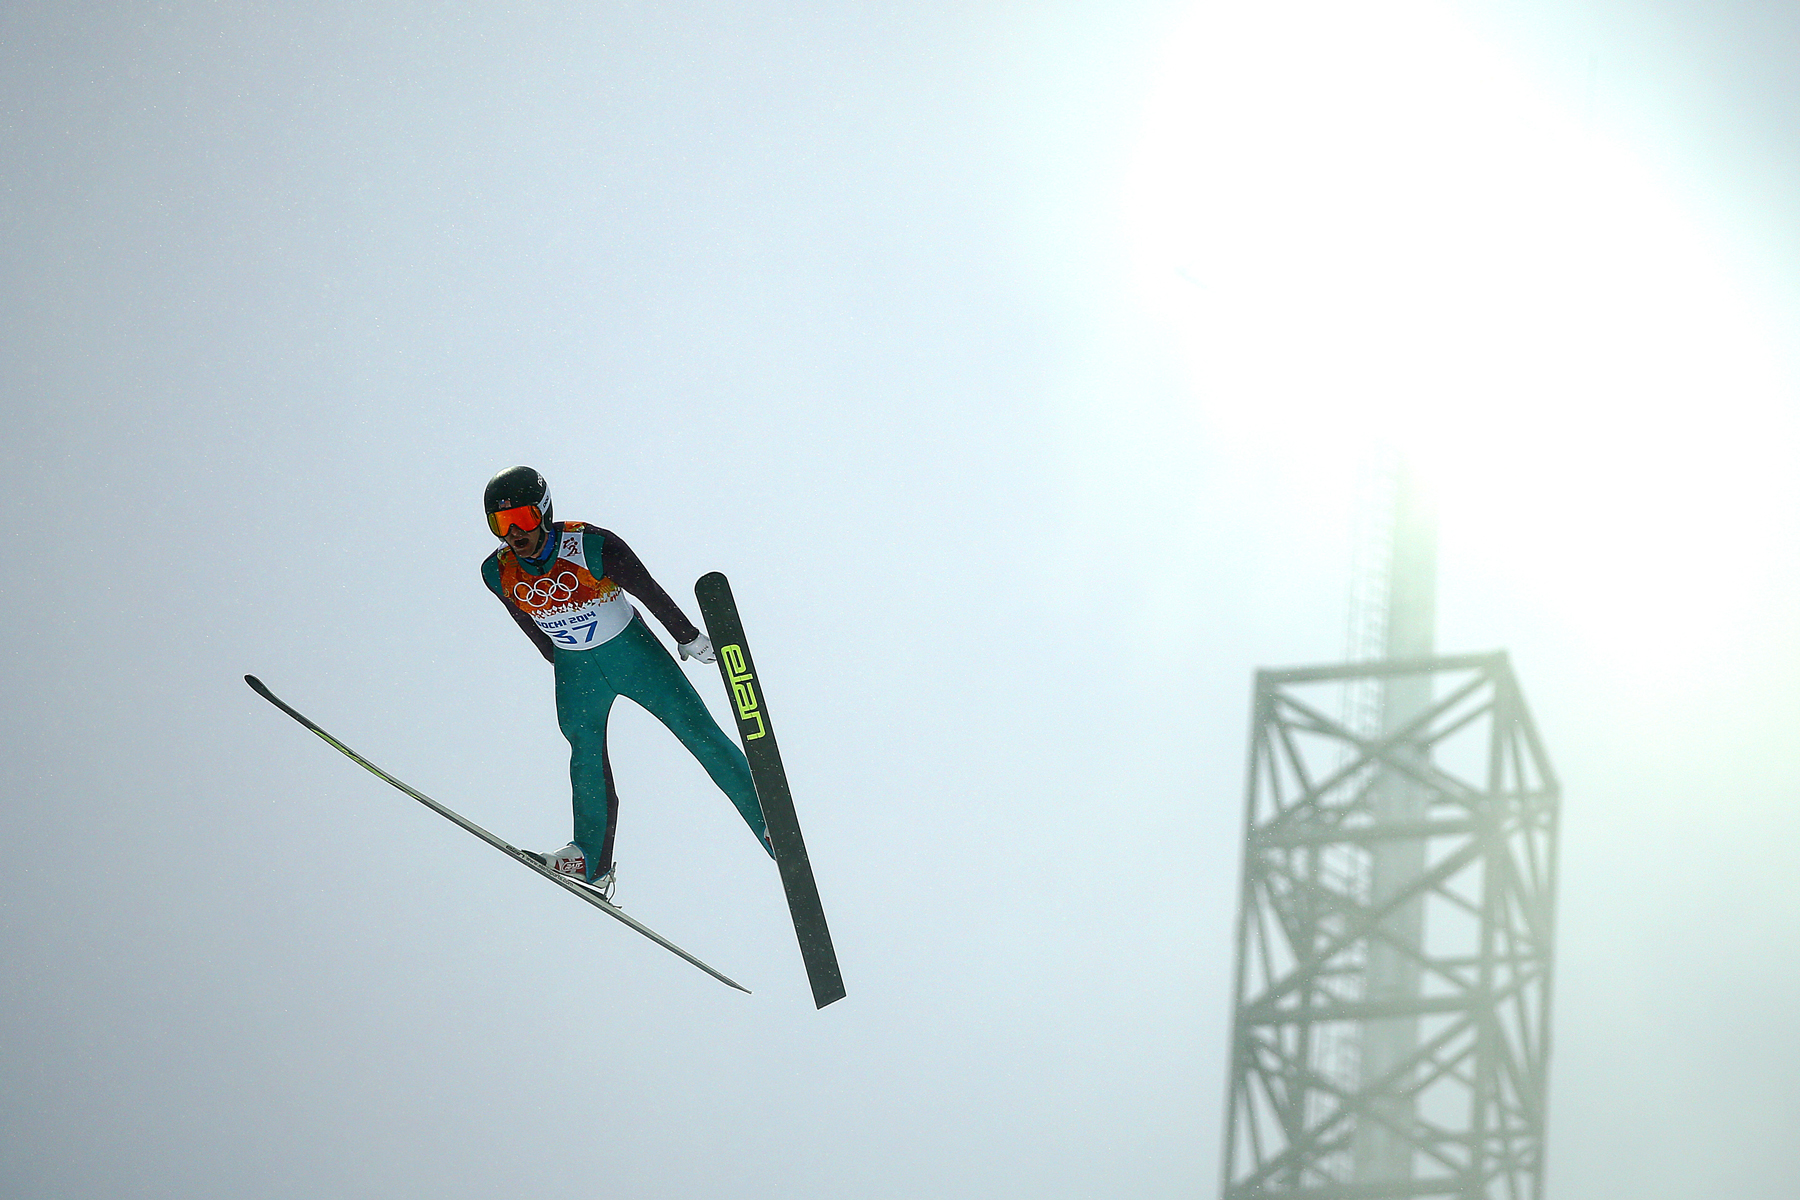 Youth Olympic Games Ski Jumping Criteria